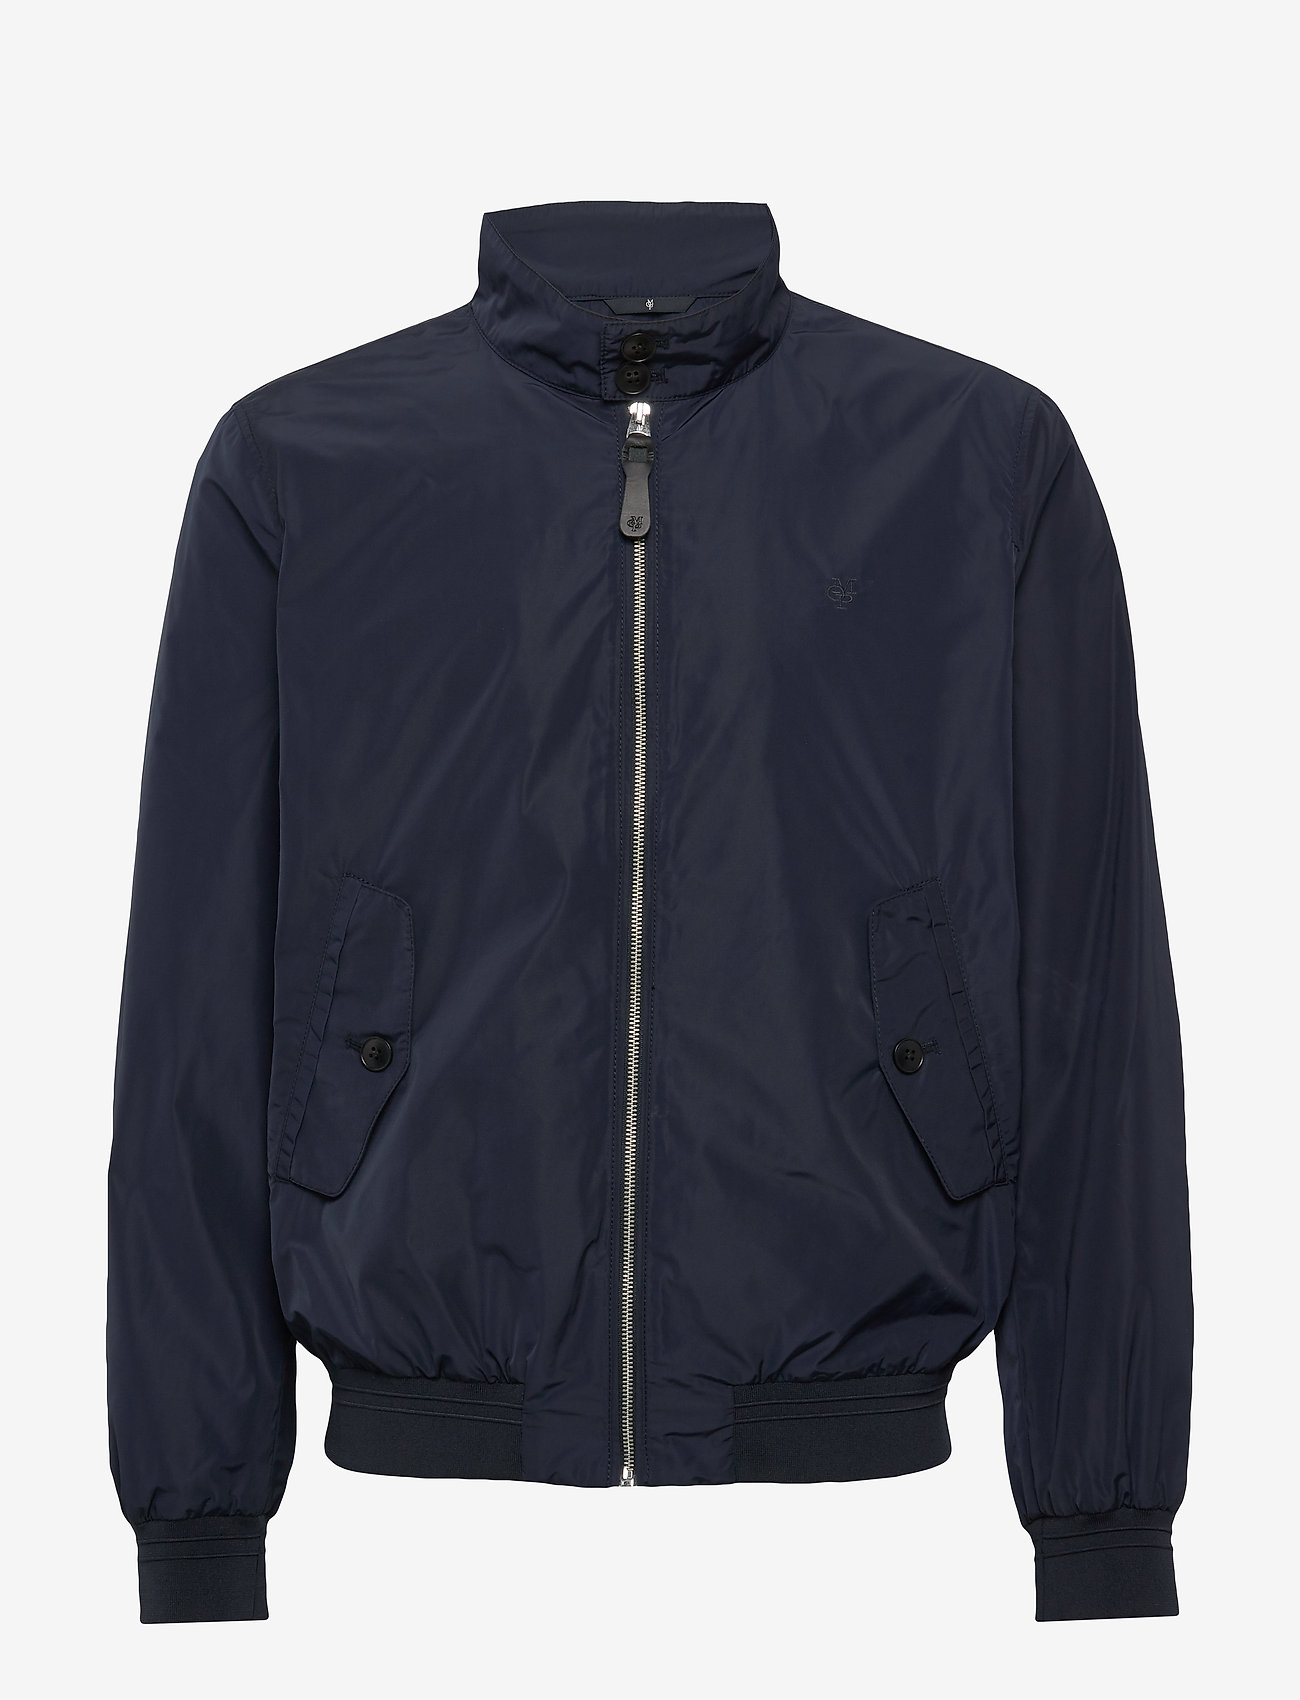 Woven Outdoor Jackets (Total Eclipse) (97.47 €) - Marc O'Polo wY3Bx